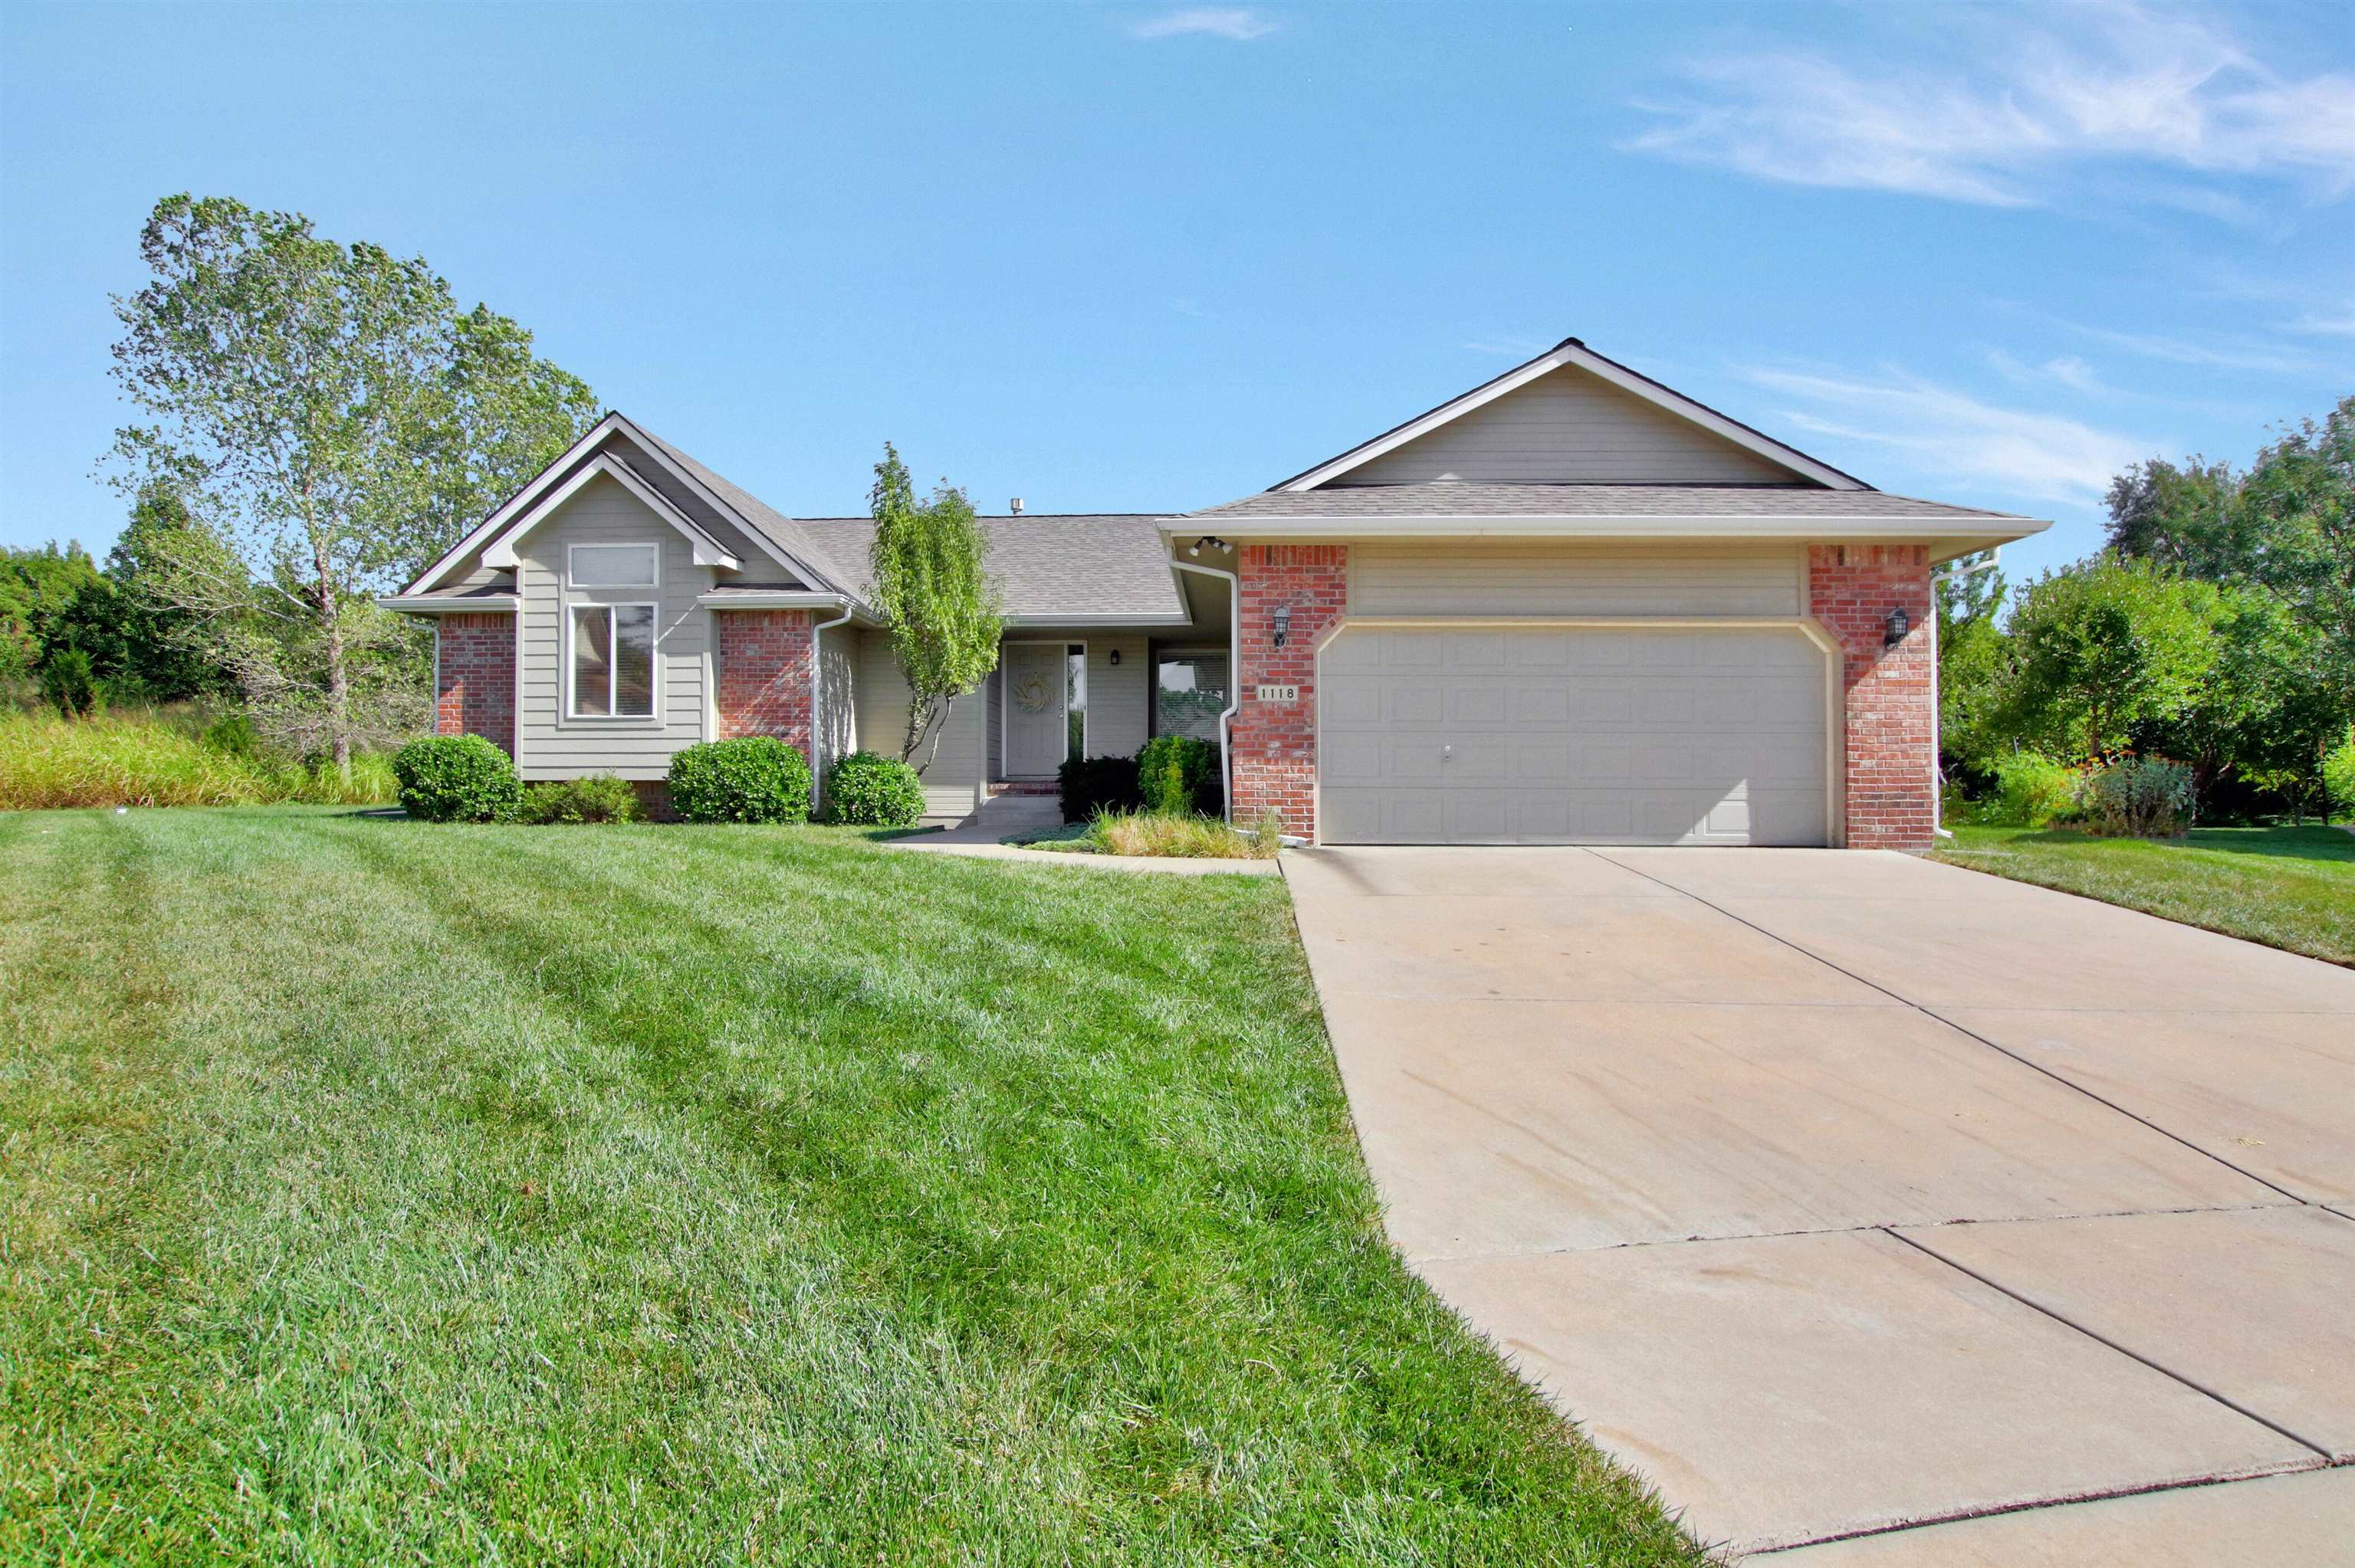 Welcome to your new home! Featuring 3 bedrooms, 2 bathrooms, 2 car garage and 1 fireplace, this home